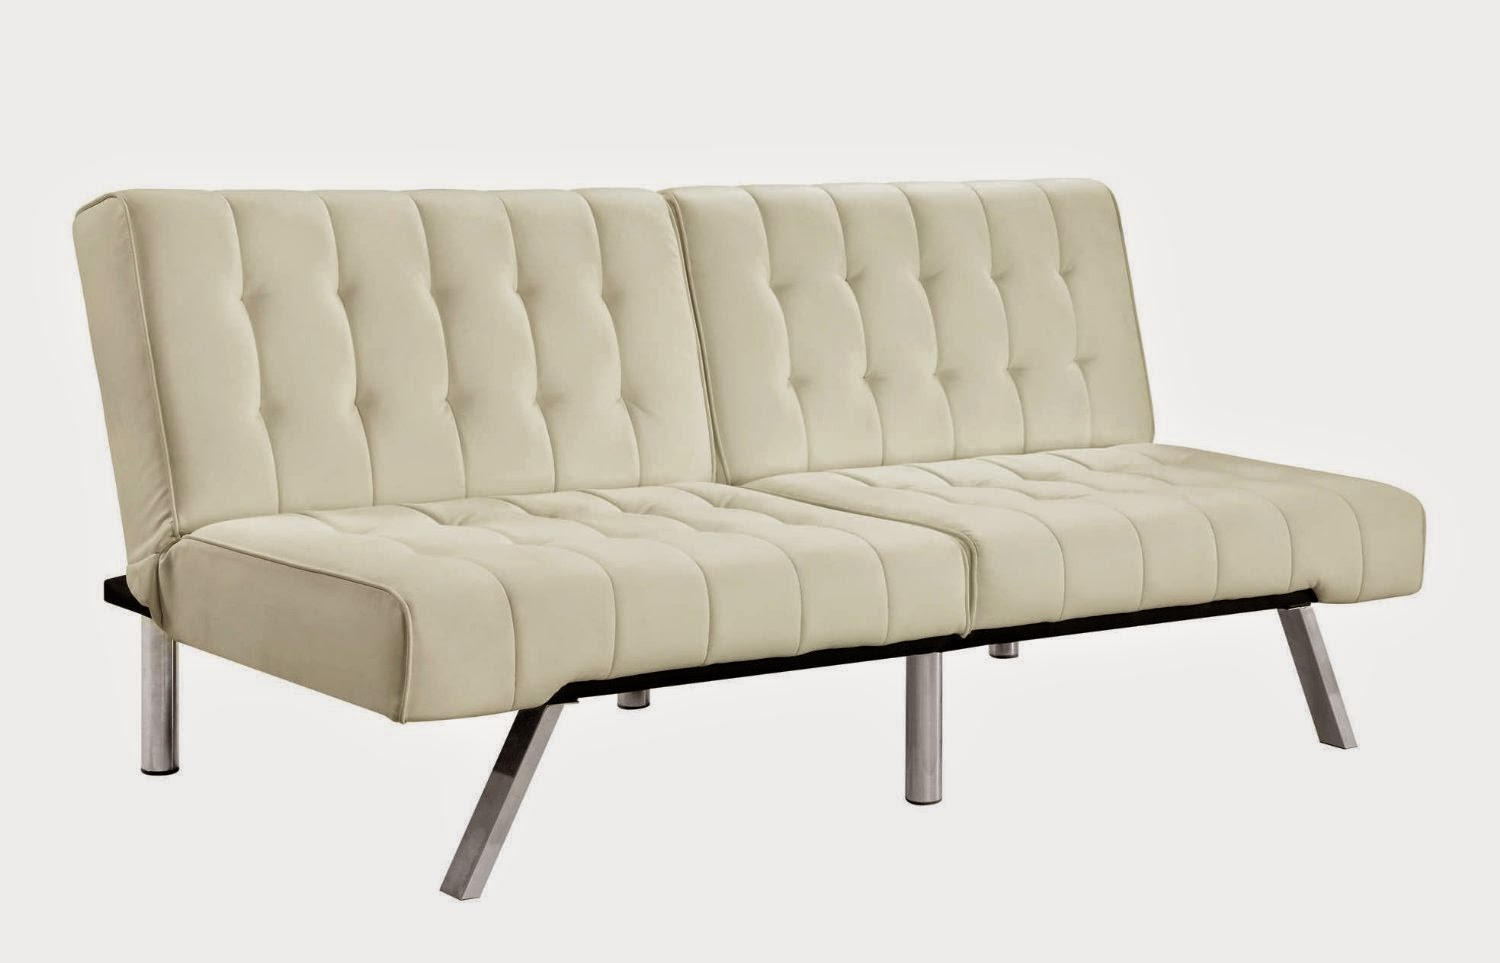 Sofa Dorel Home Products Emily Splitback Futon, Vanilla